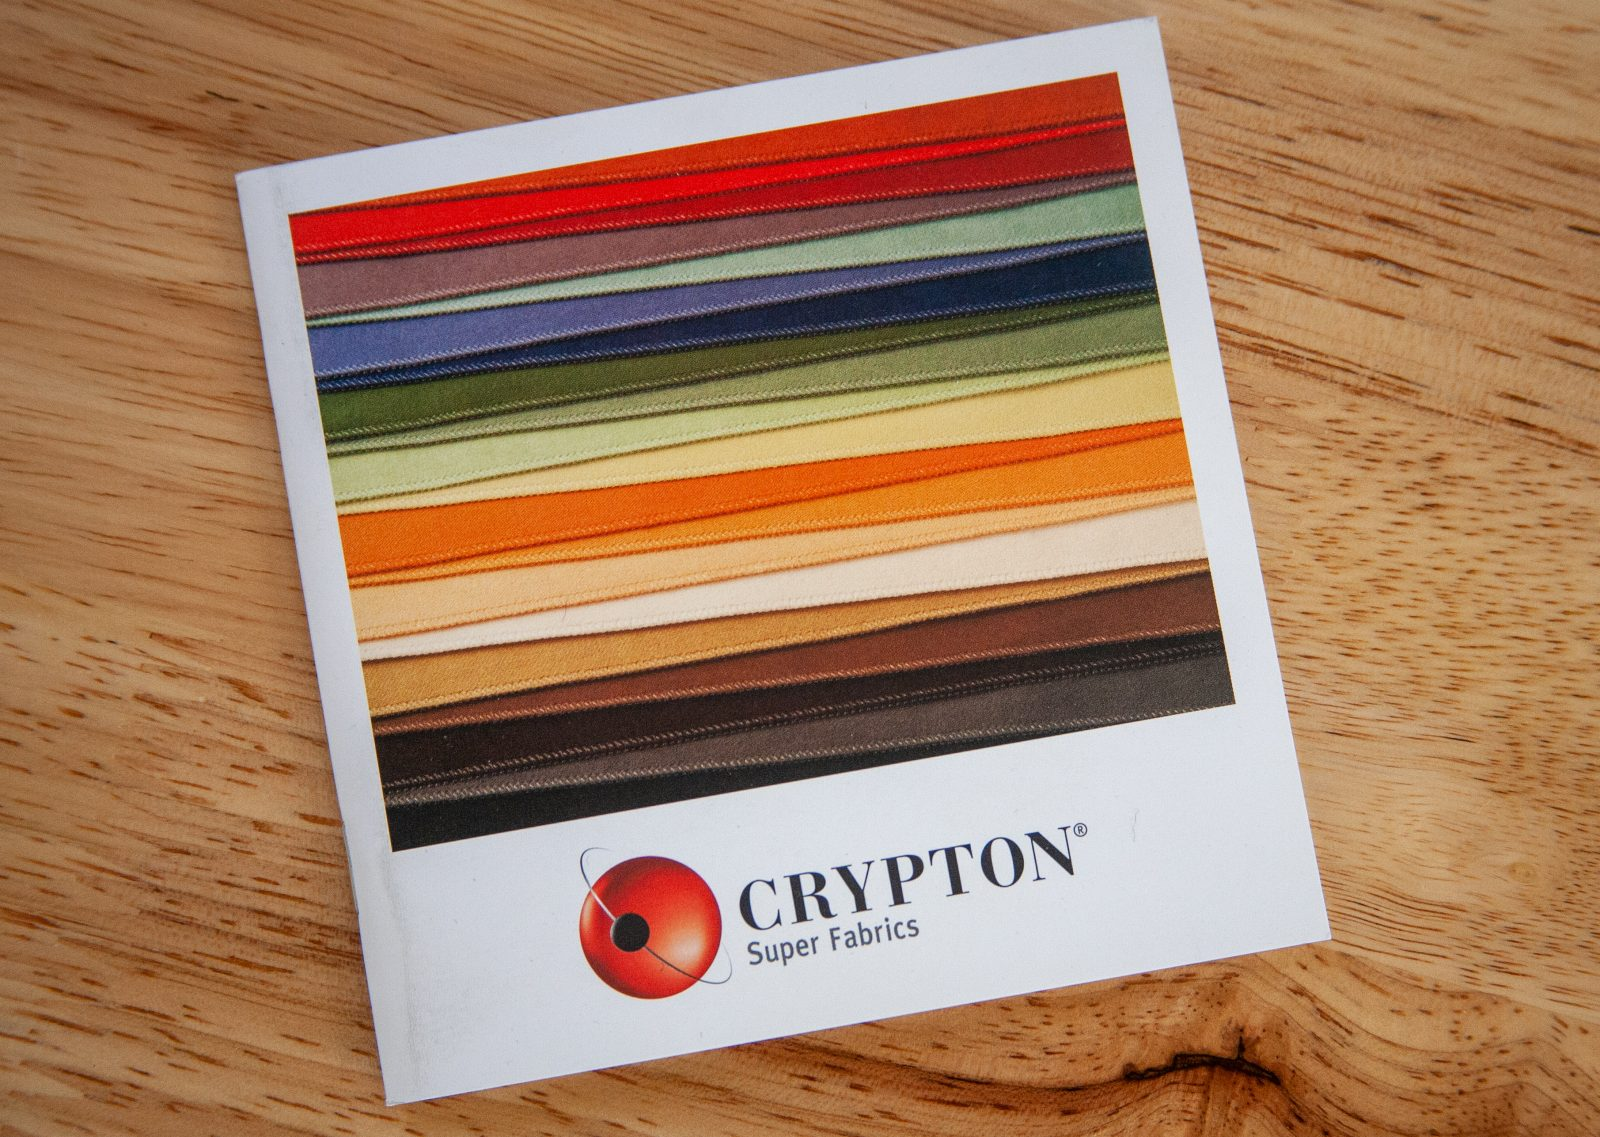 Photography for Crypton Fabrics